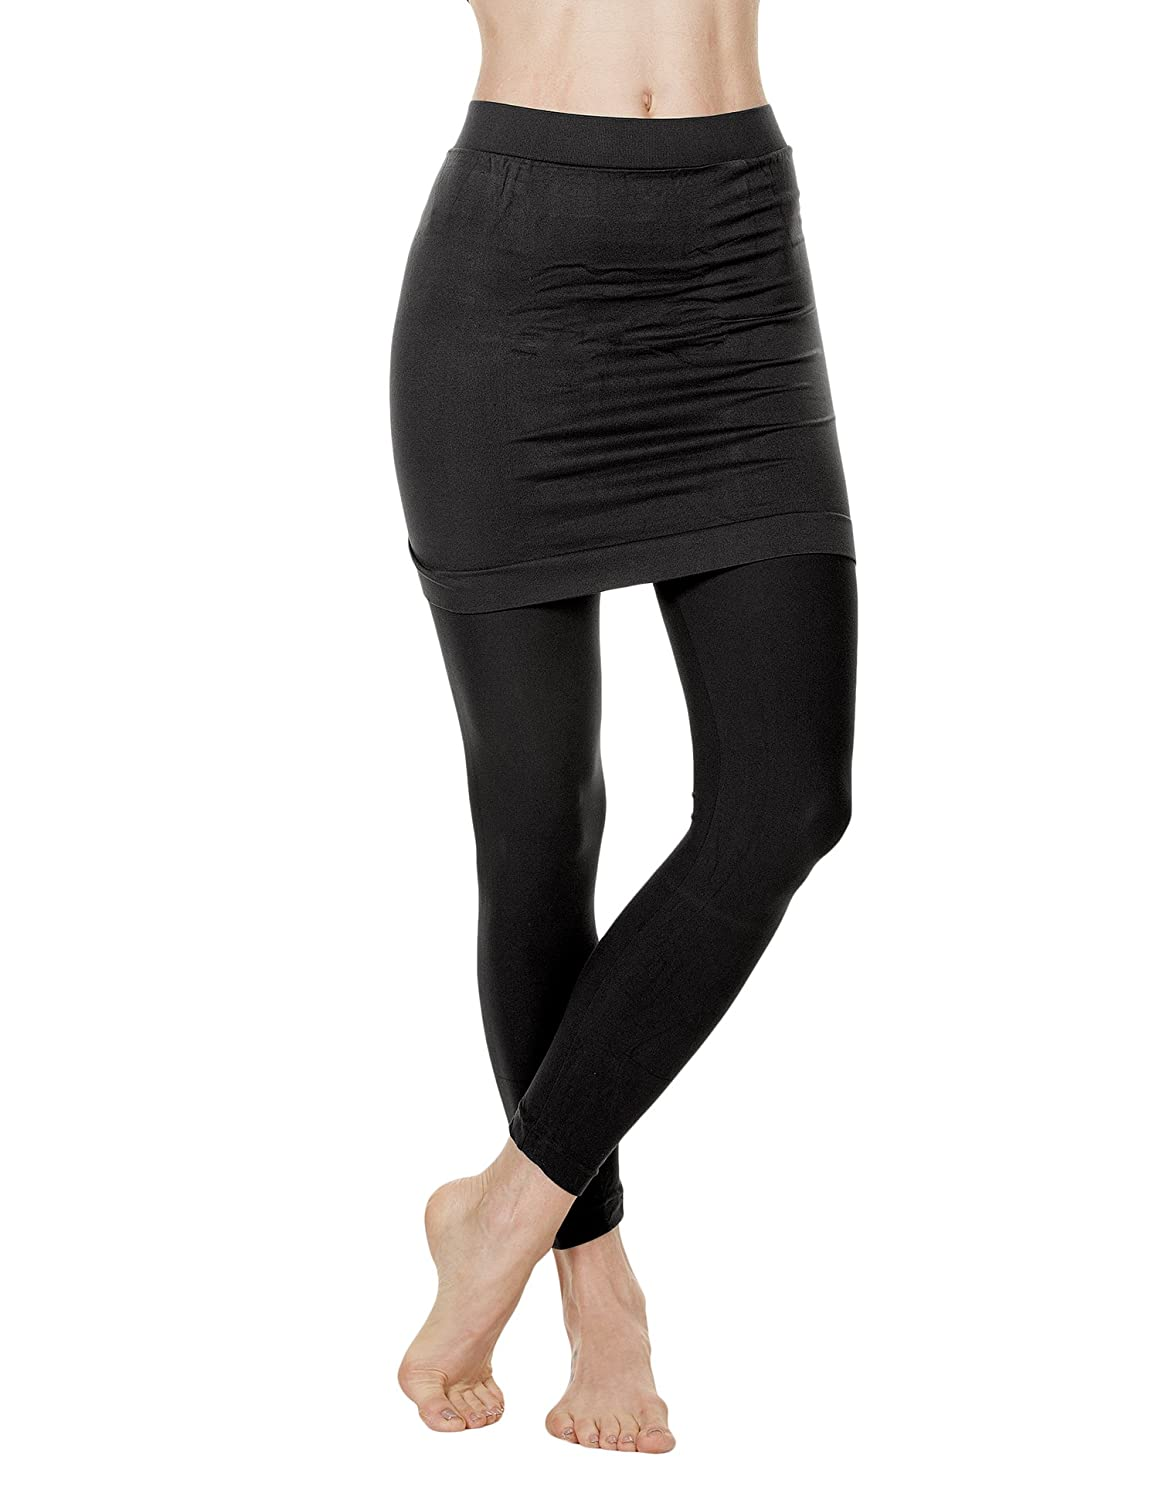 e180b4ed15b85 SUPER LONG LENGTH: Our super long 39 inch long cable knit leg warmers are  one of our most popular items. PERFECT FOR COLD DAYS: Our Foot Traffic leg  warmers ...